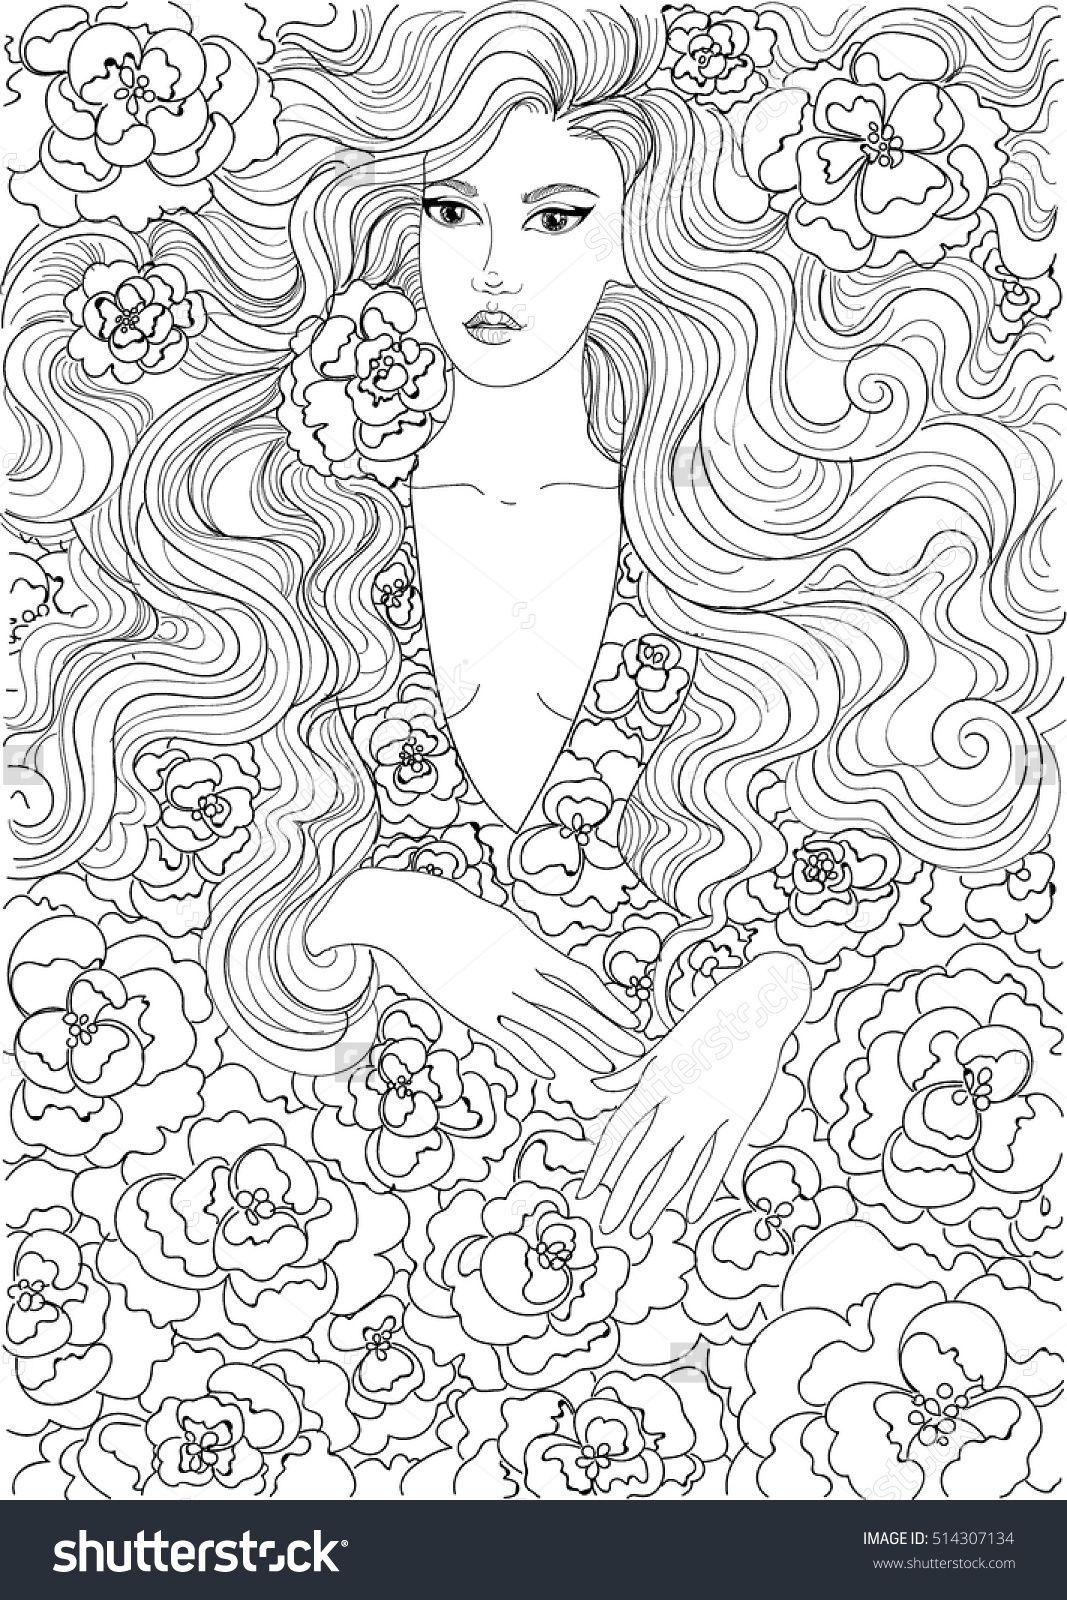 Coloring Beautiful Girl In A Flowered Dress | Pattern